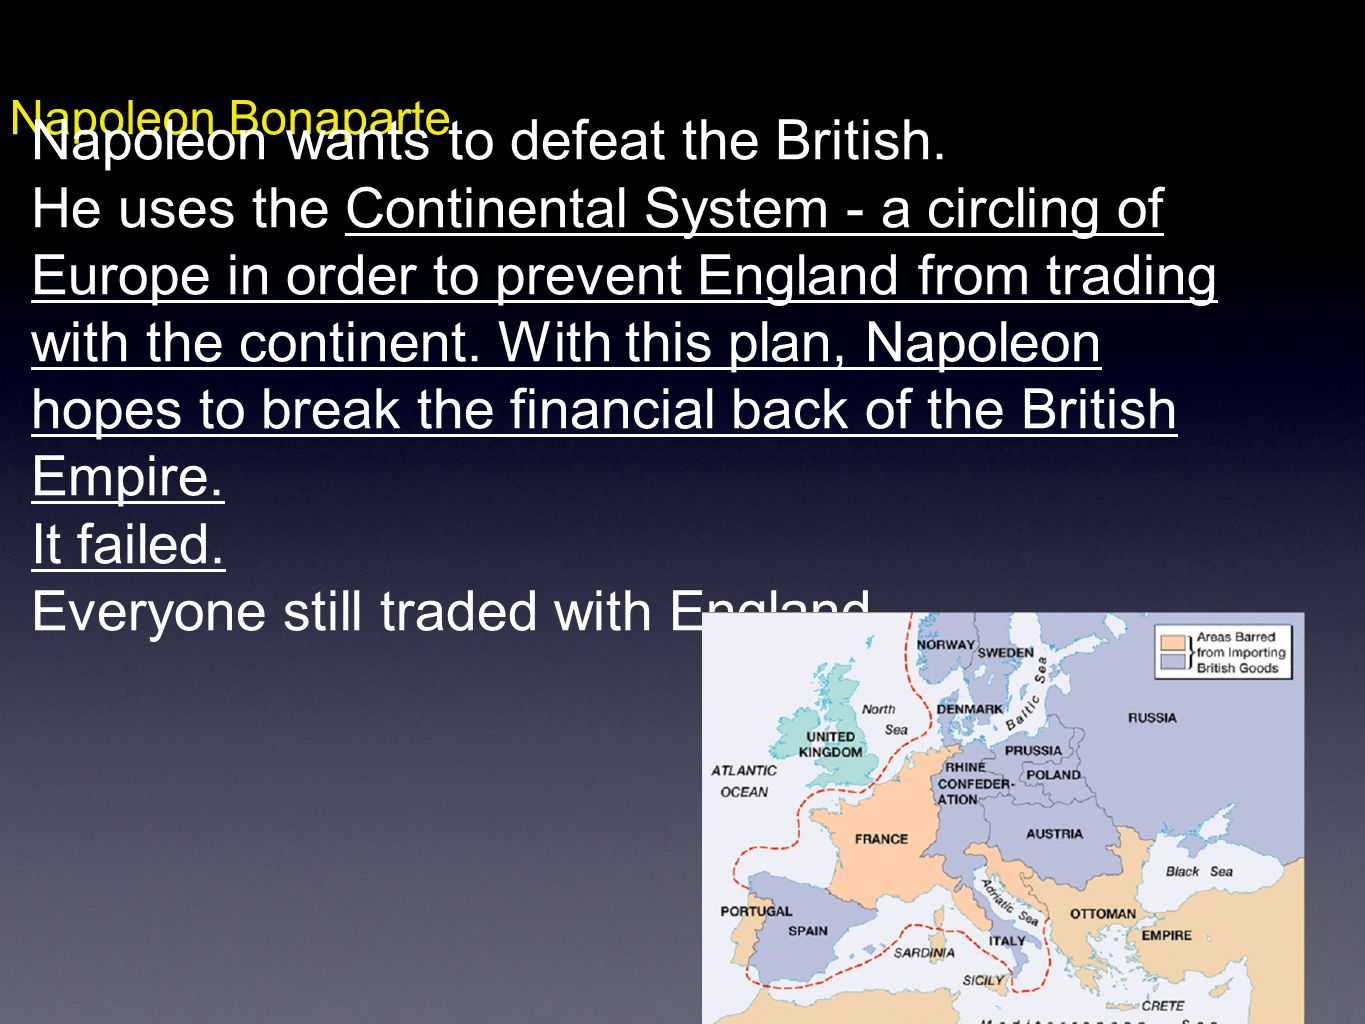 Napoleon wants to defeat the British.